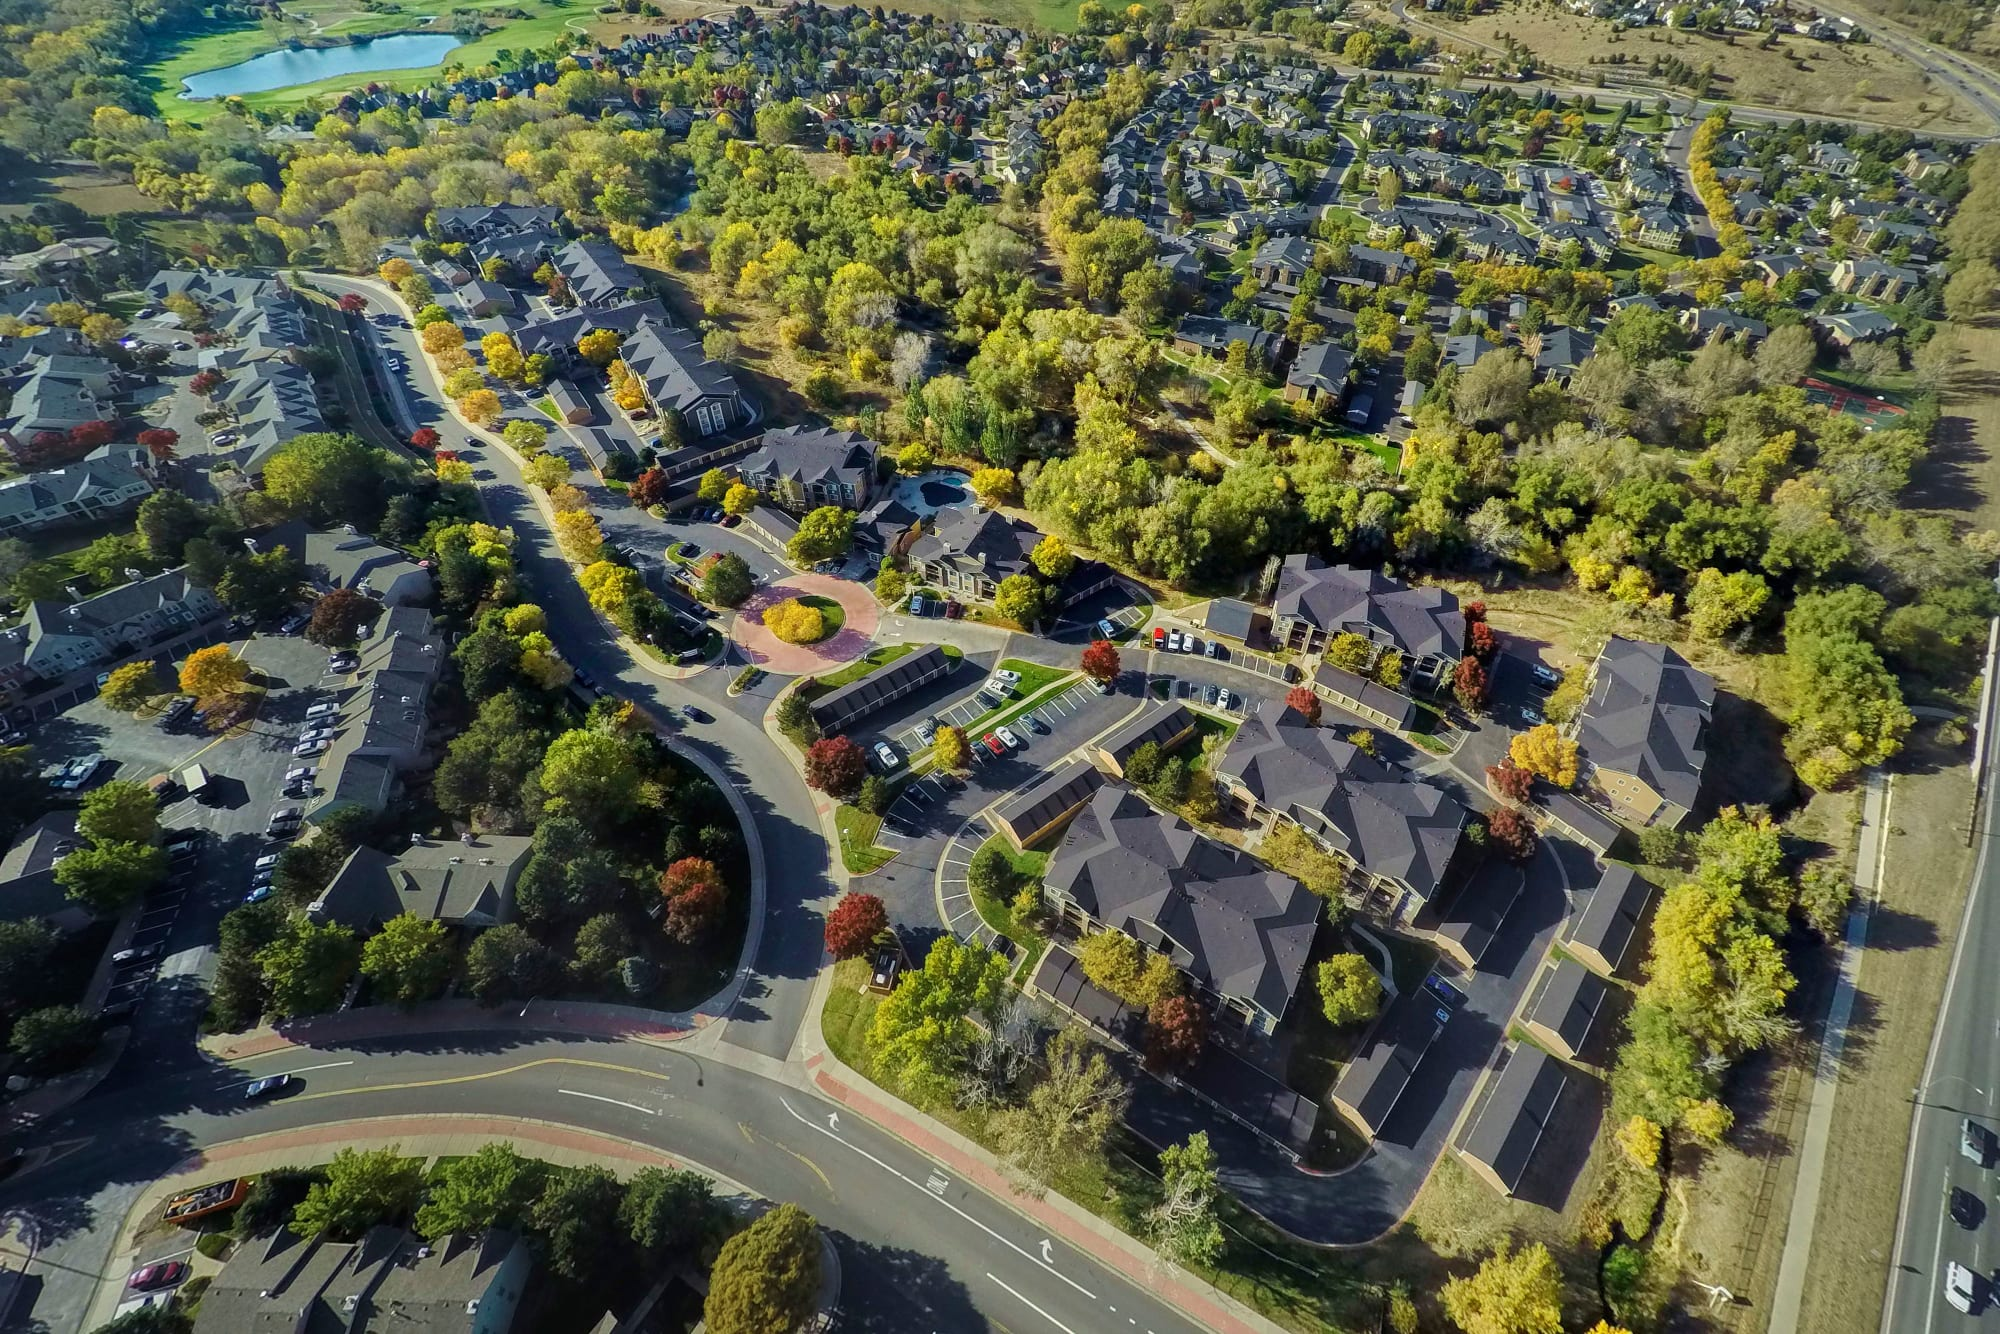 An aerial view of the property and surrounding areas at The Crossings at Bear Creek Apartments in Lakewood, Colorado